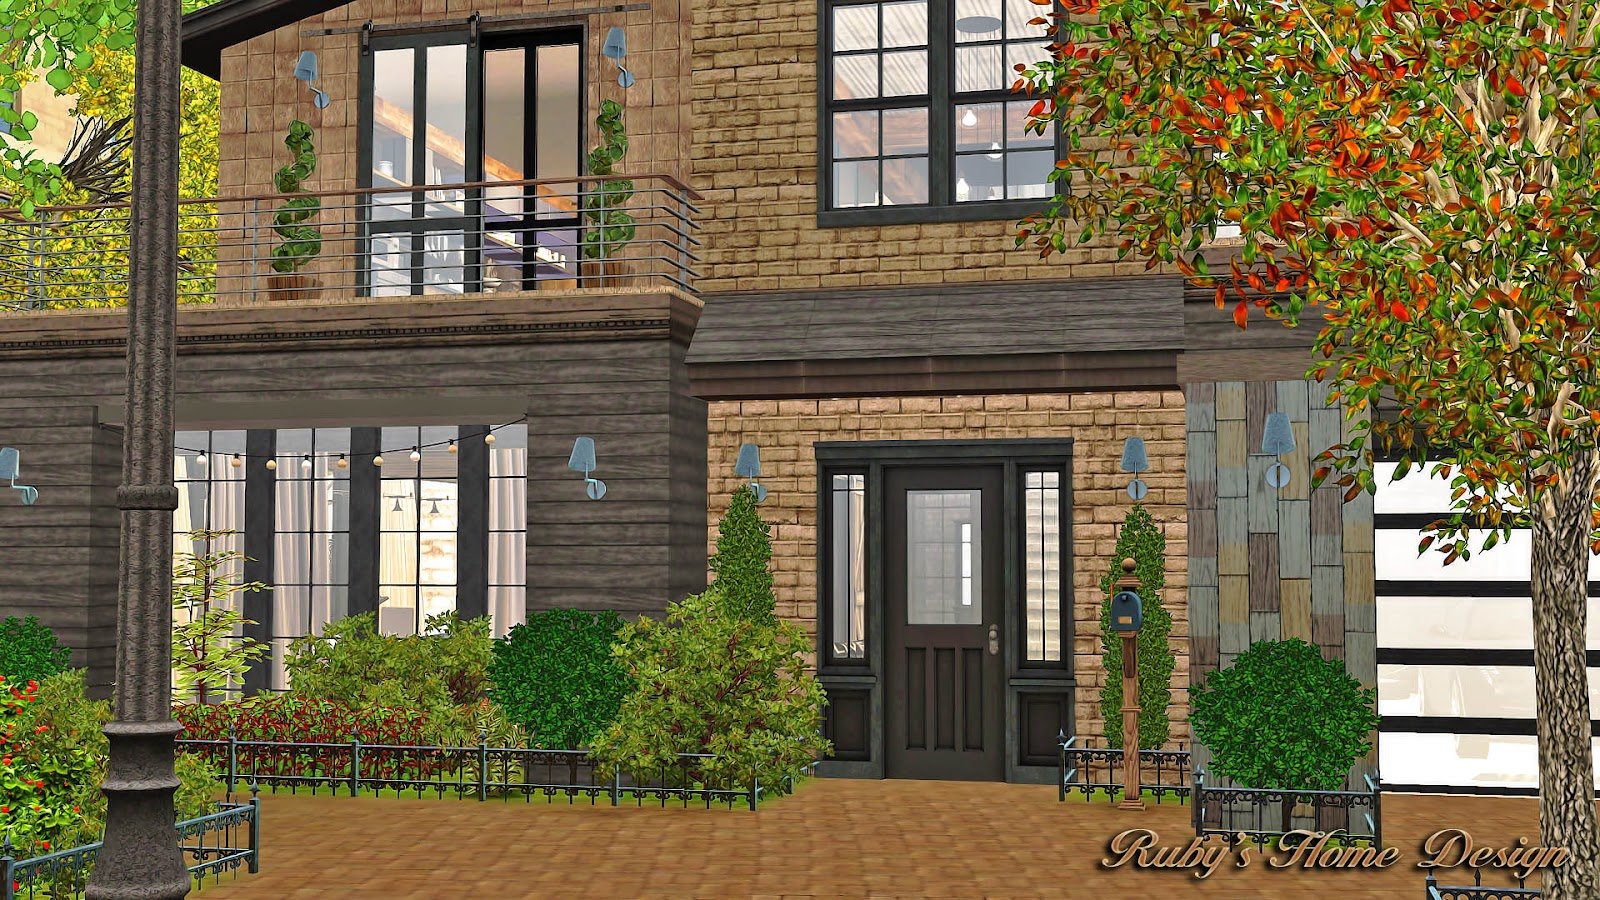 Sims3 Industrial Chic 工業風住宅- Ruby's Home Design